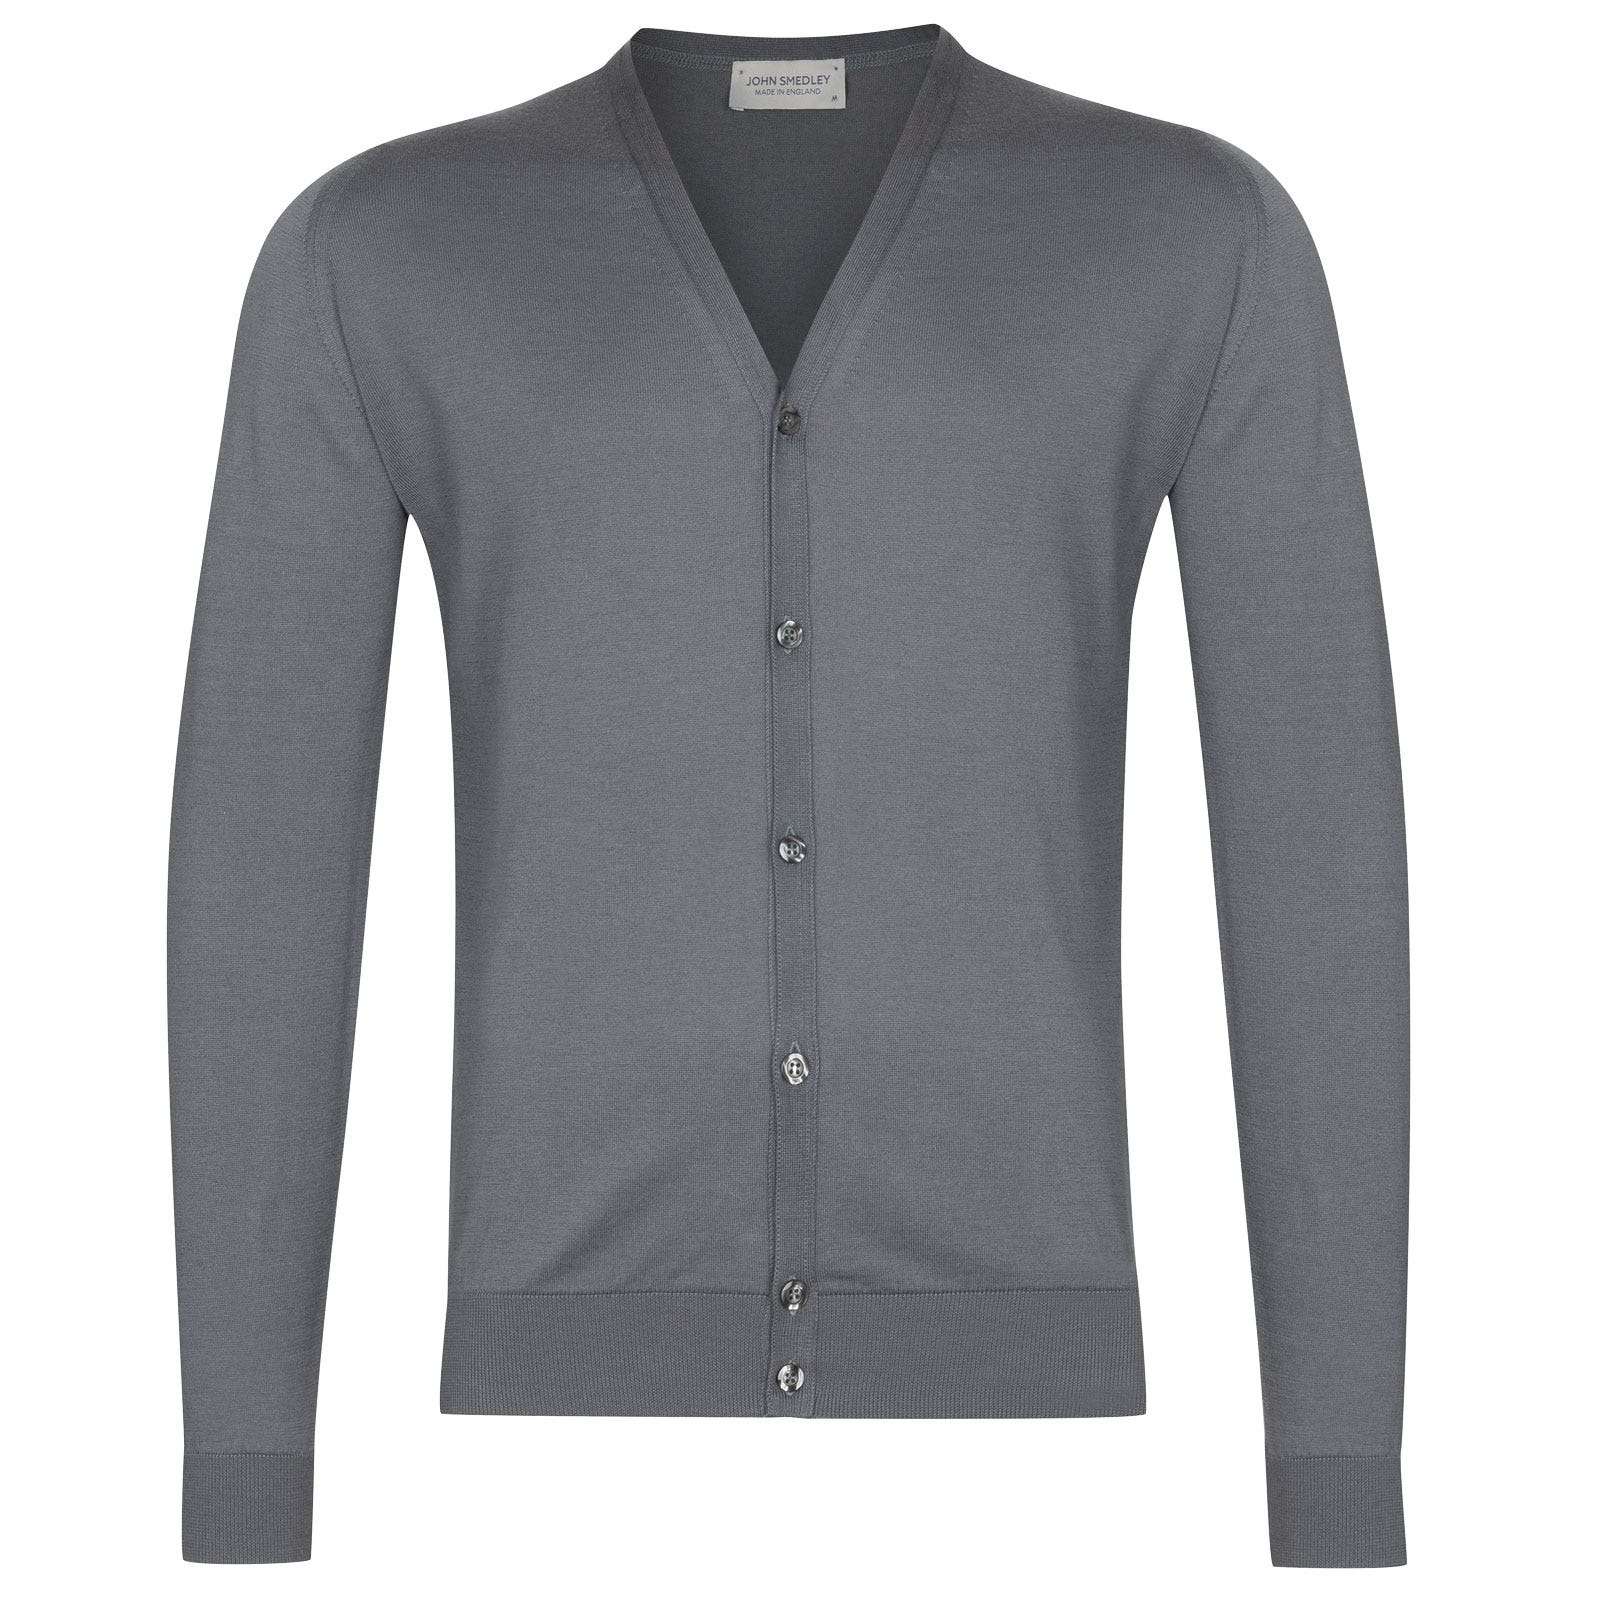 John Smedley Whitchurch in Grey Stone Cardigan-LGE